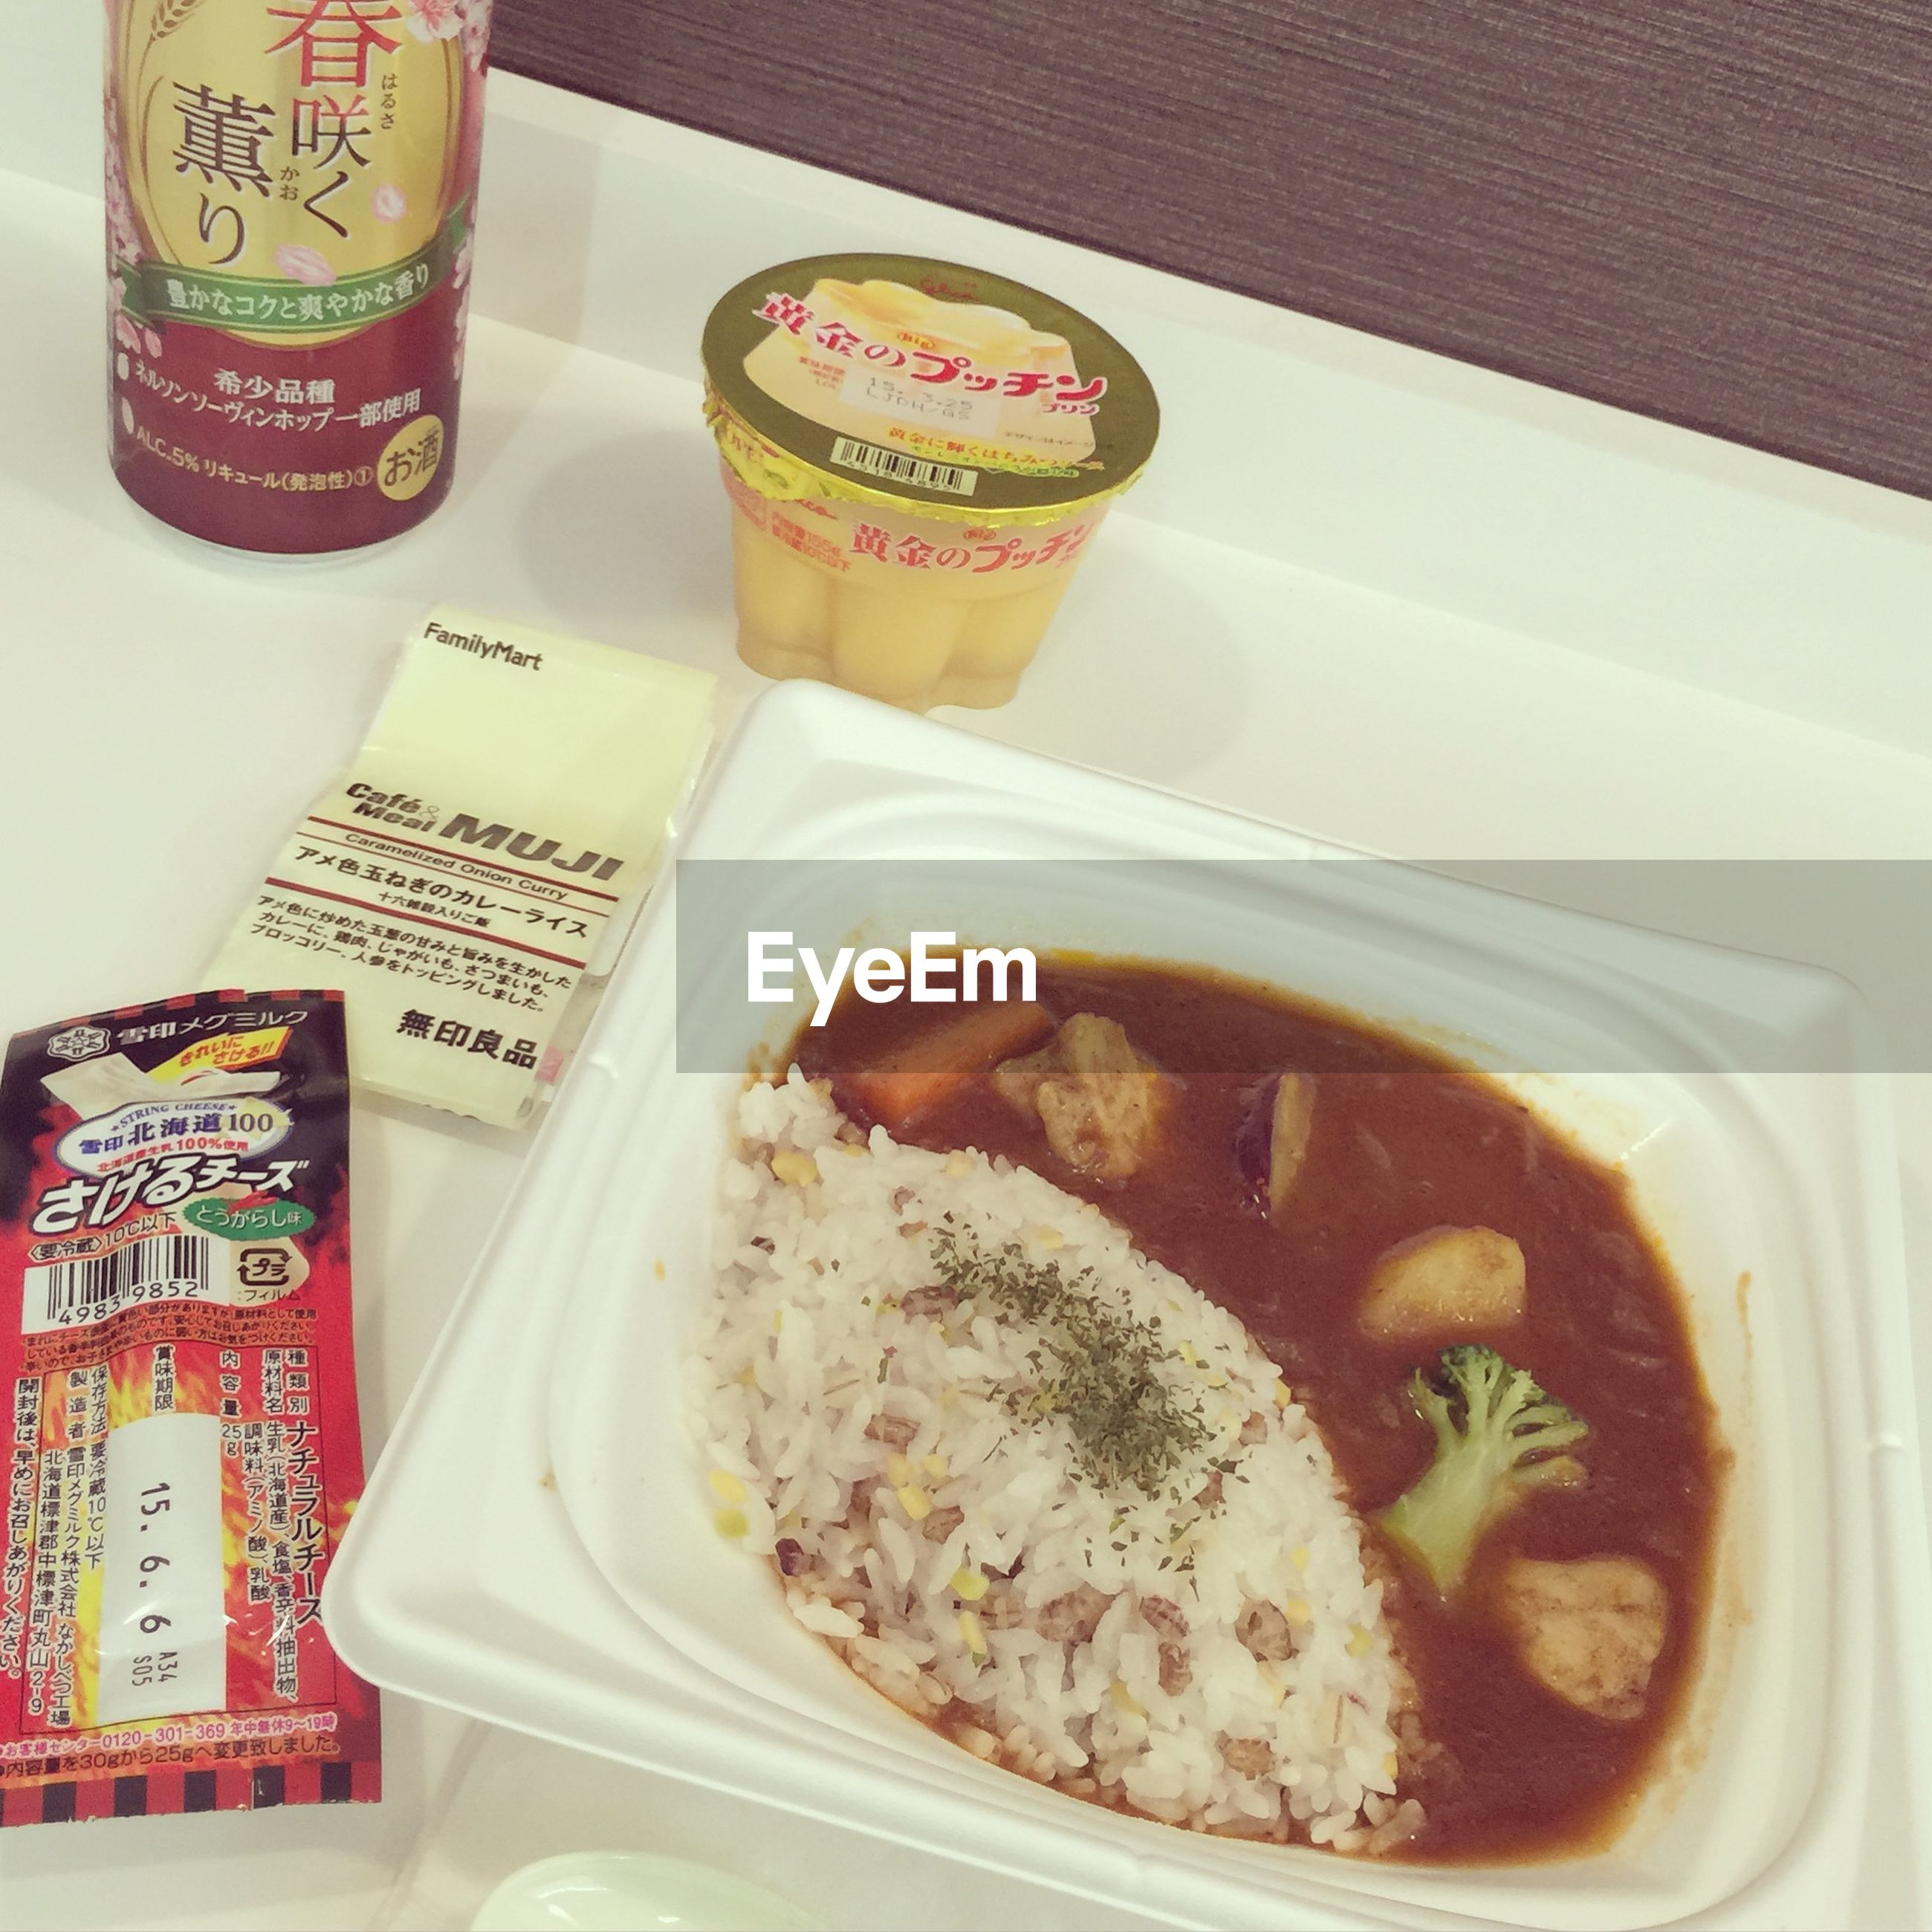 food and drink, indoors, food, freshness, still life, high angle view, plate, text, ready-to-eat, table, healthy eating, western script, sweet food, bowl, drink, refreshment, indulgence, close-up, serving size, no people